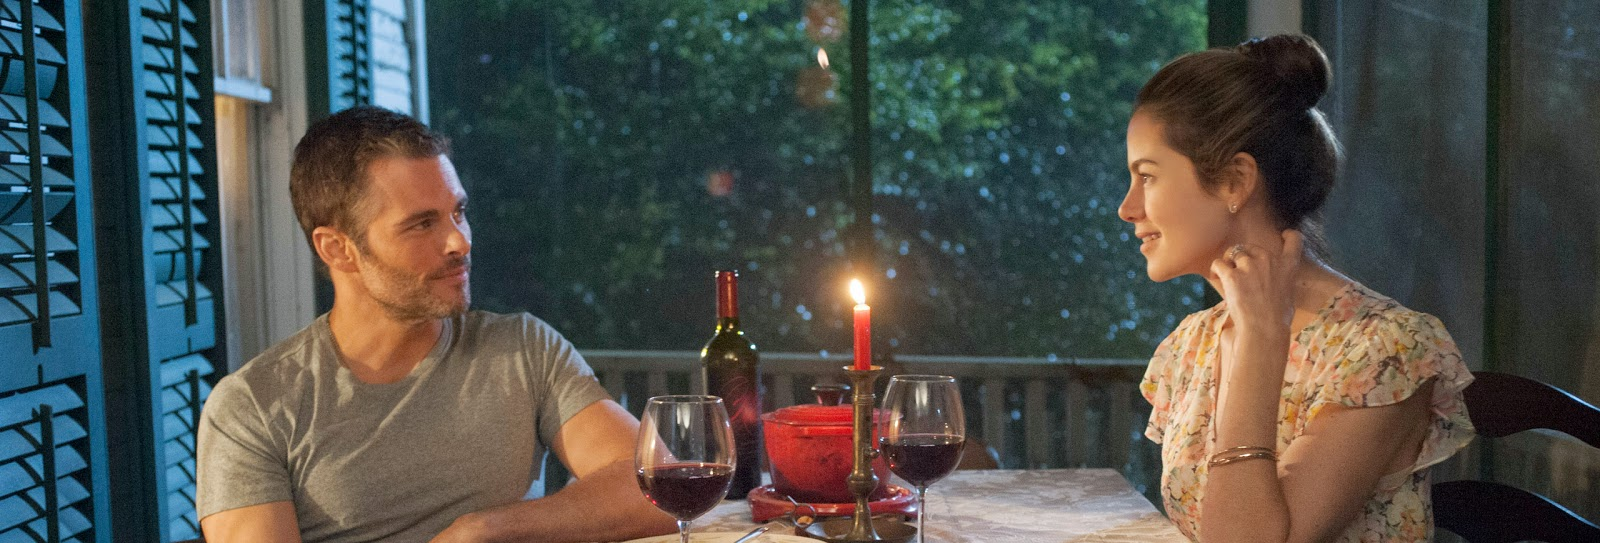 New Trailer for THE BEST OF ME ~ Reviews From A Bed